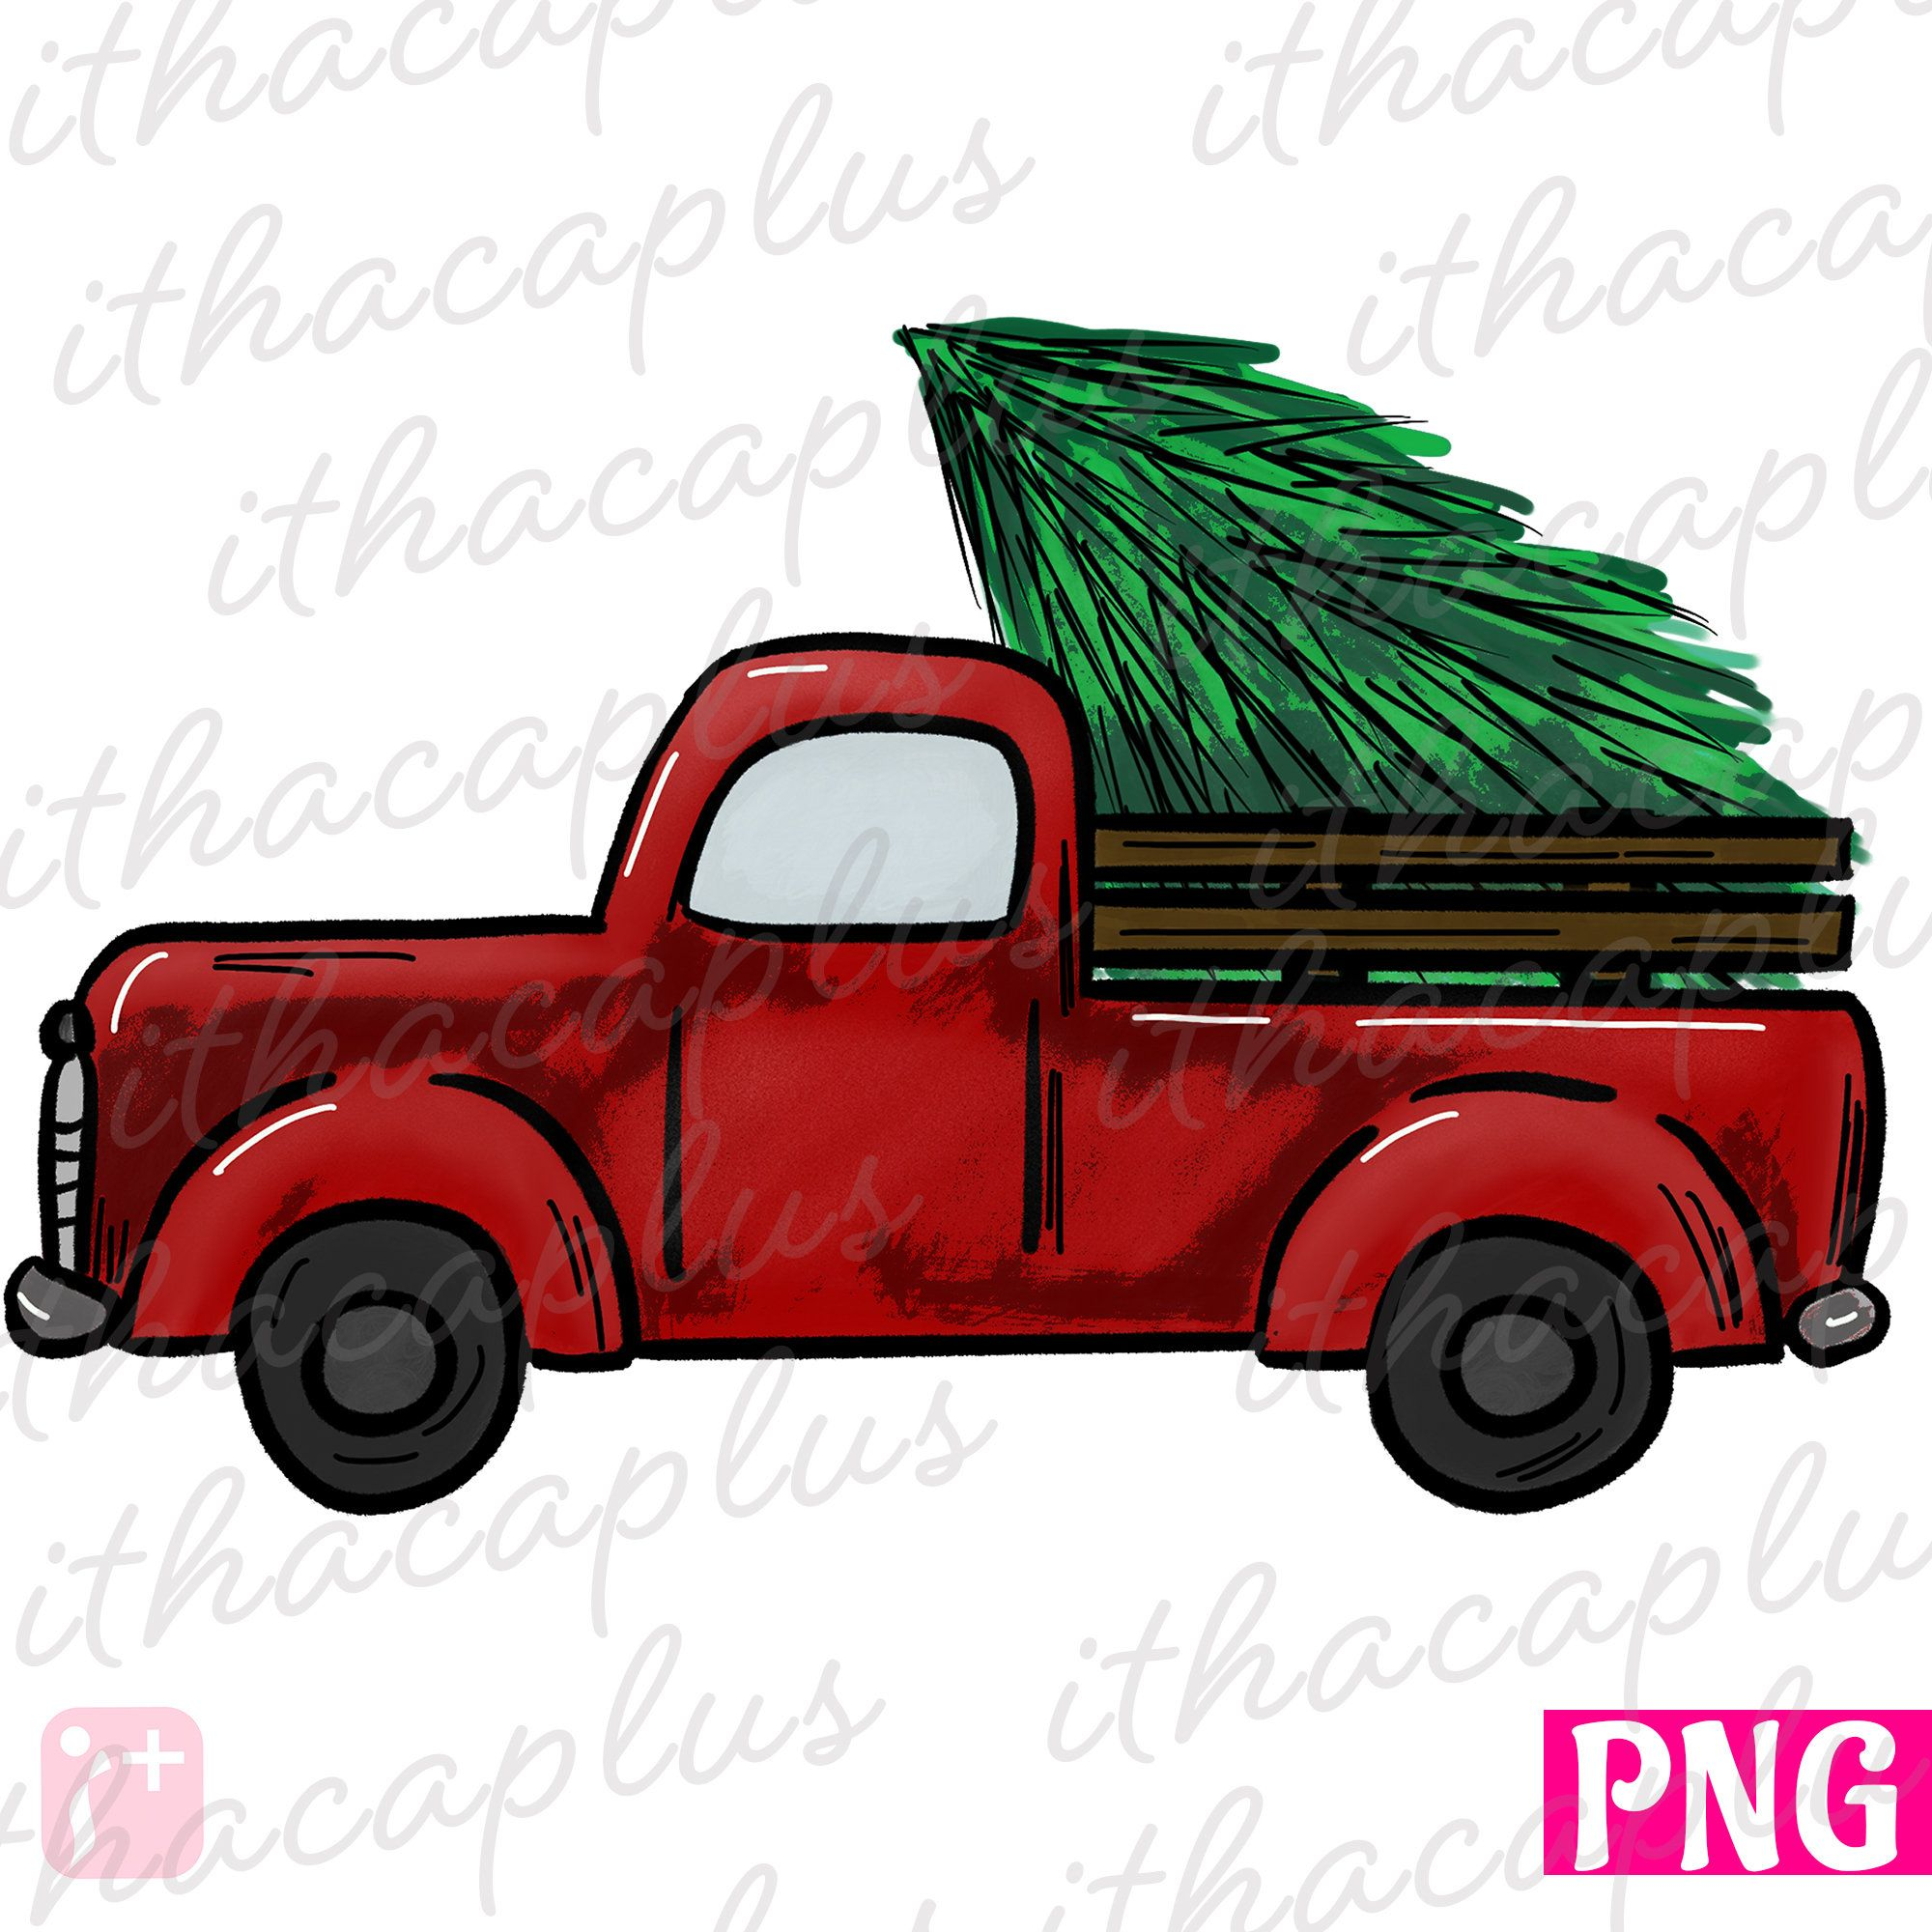 Christmas Red Truck Png Files Sublimation Christmas Truck Printable Christmas Tree Truck Subl Christmas Red Truck Christmas Printables Christmas Tree Truck